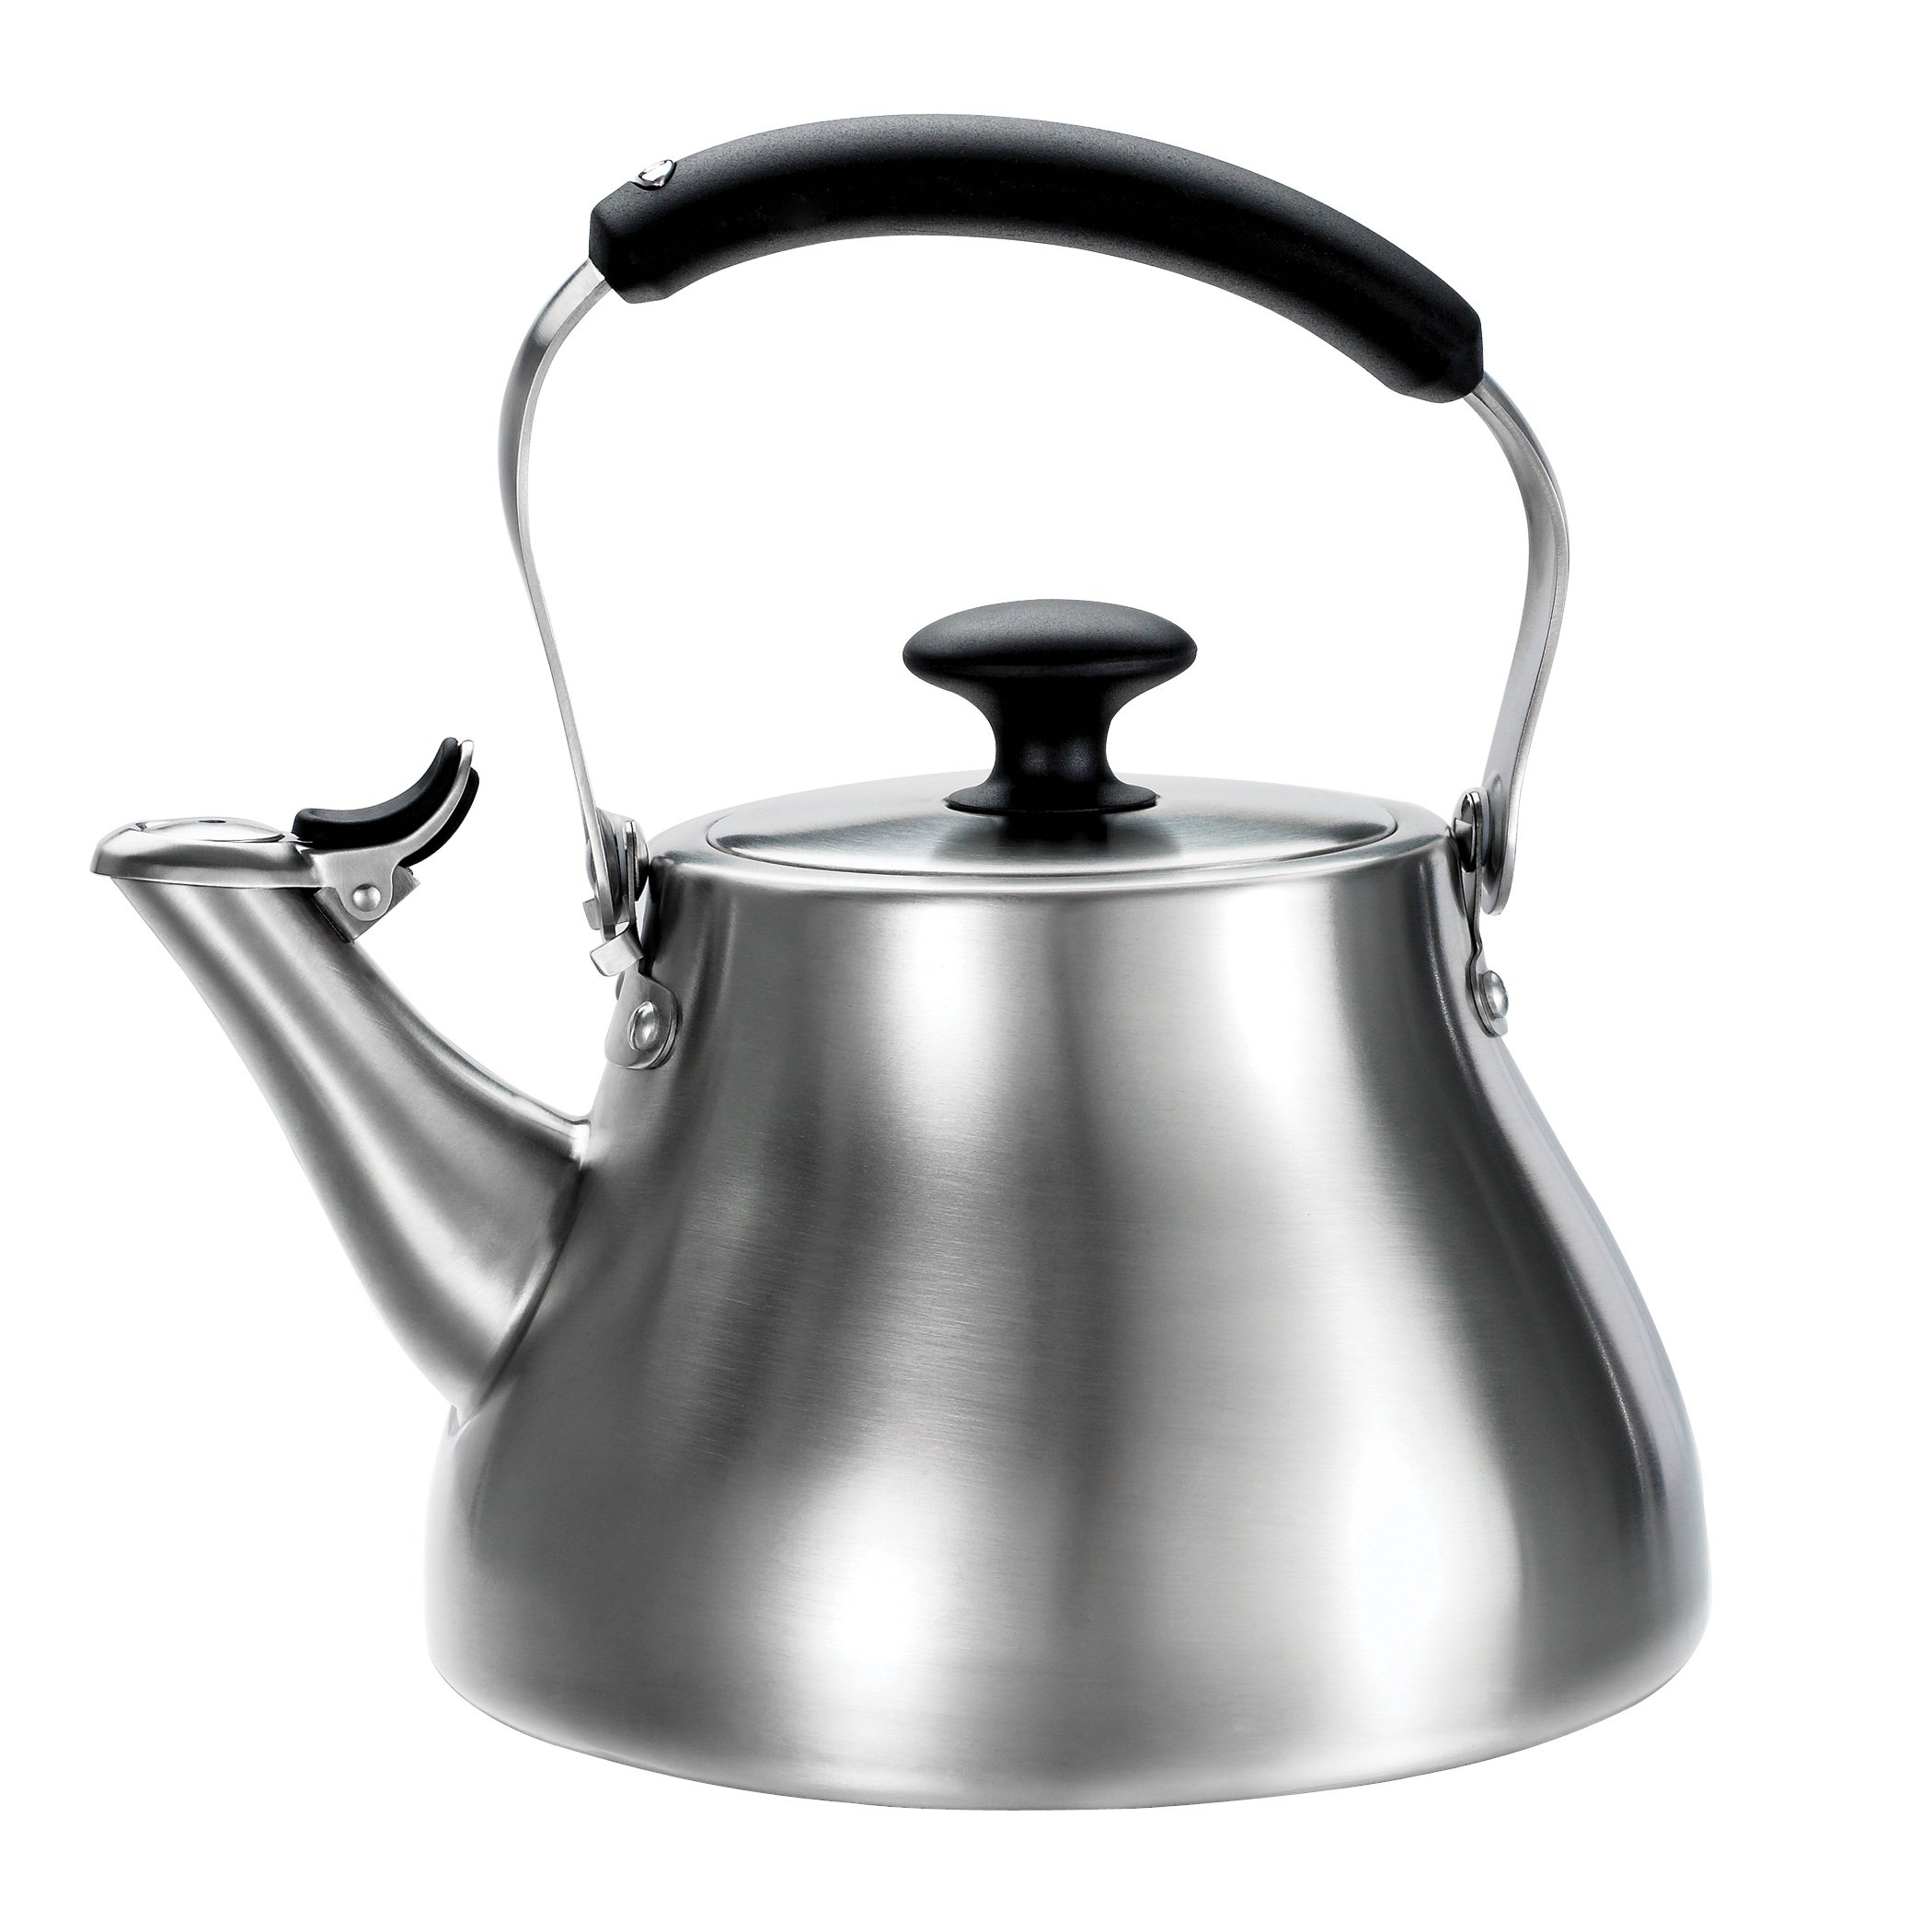 OXO Good Grips Classic Tea Kettle, Brushed Stainless by OXO